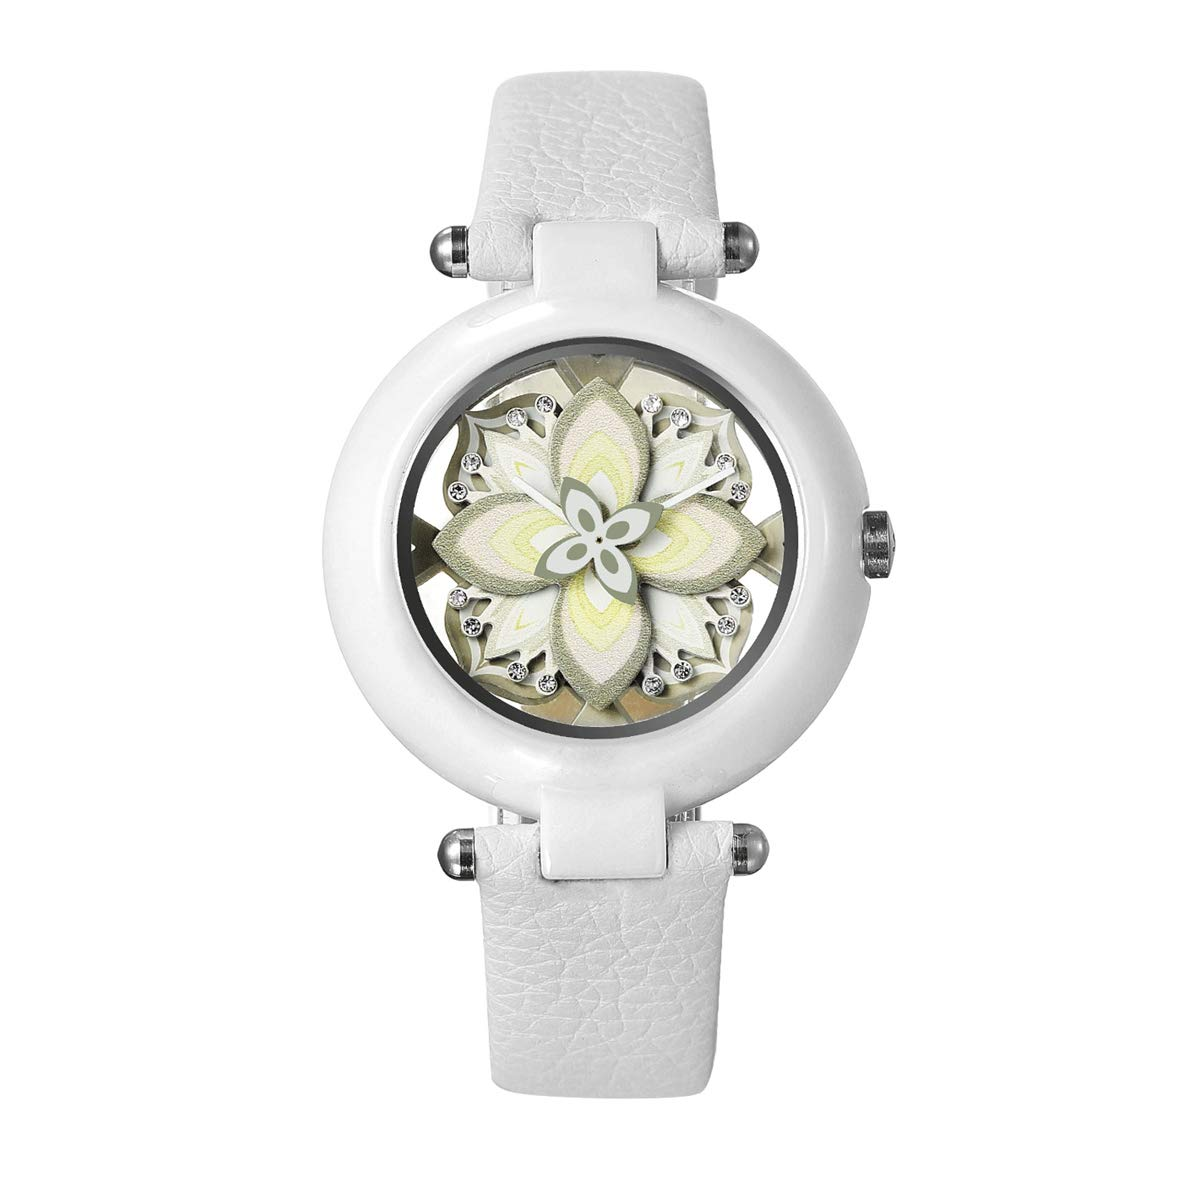 Reloj - SENORS - para - MS1070-White: Amazon.es: Relojes